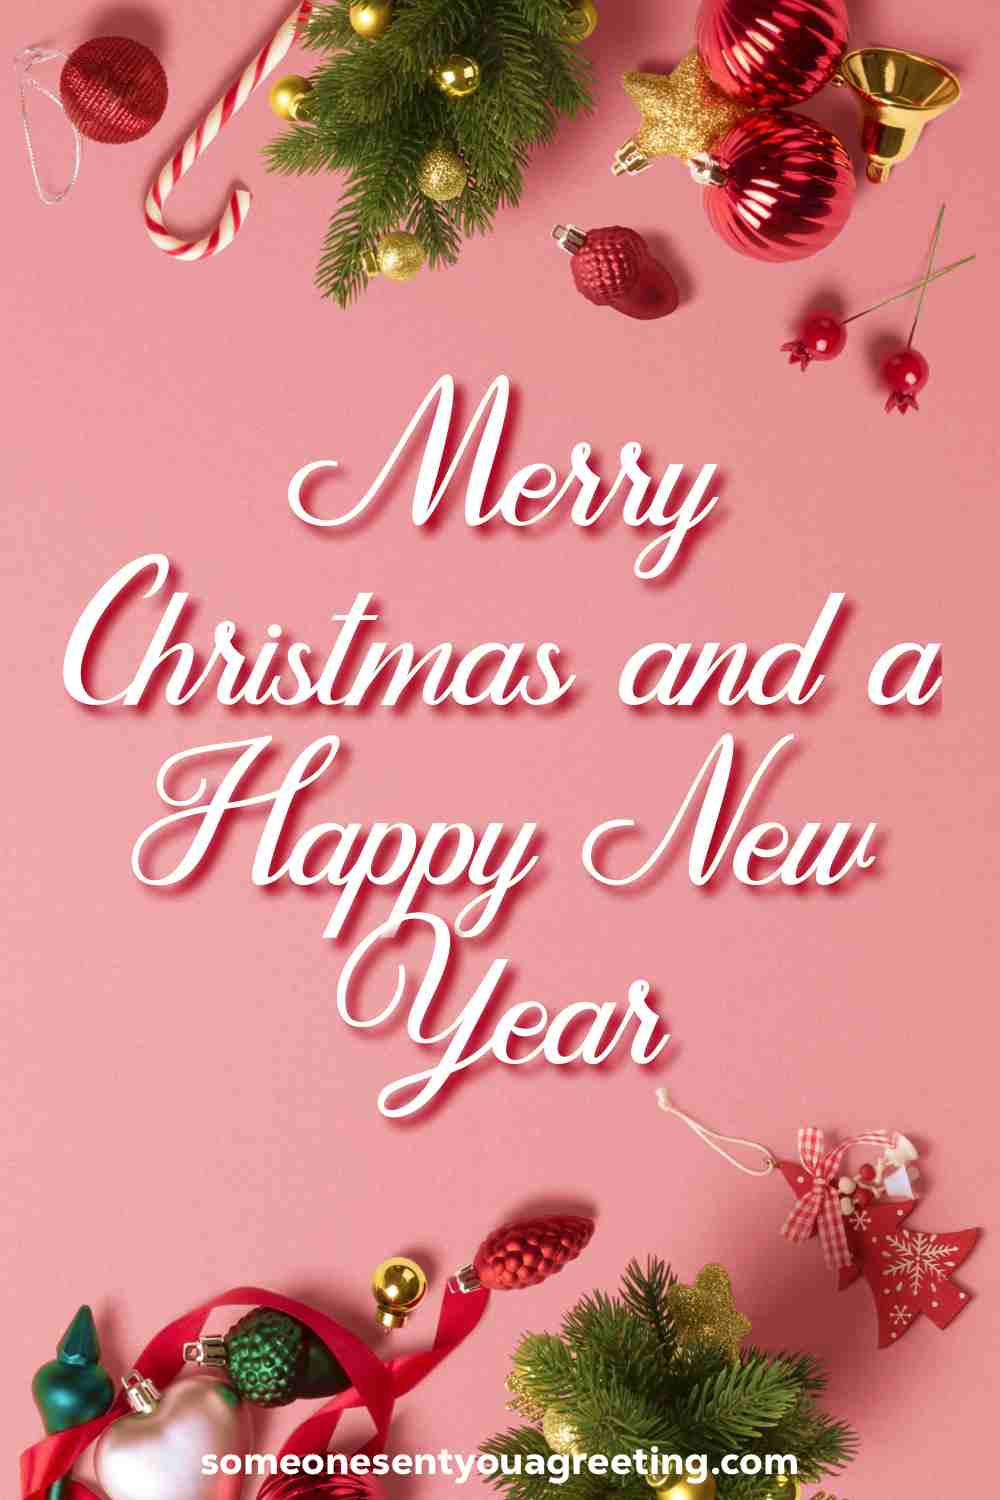 Merry Christmas message for Facebook